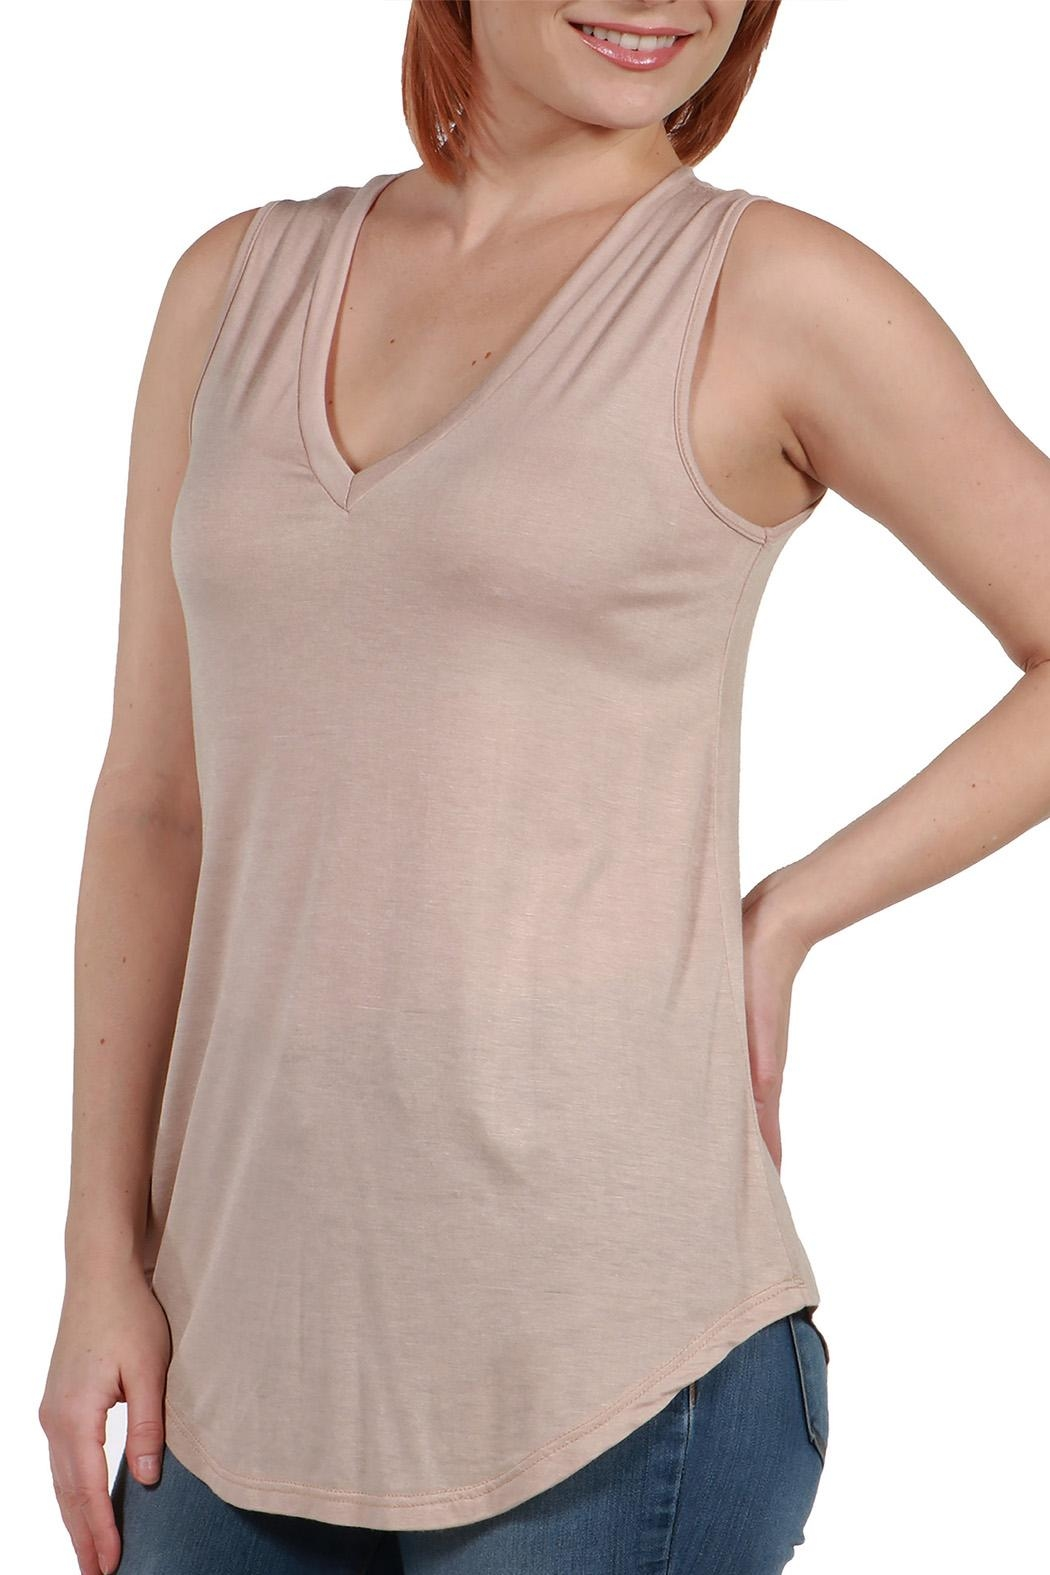 24/7 Comfort Apparel Avery Tunic Top - Front Cropped Image